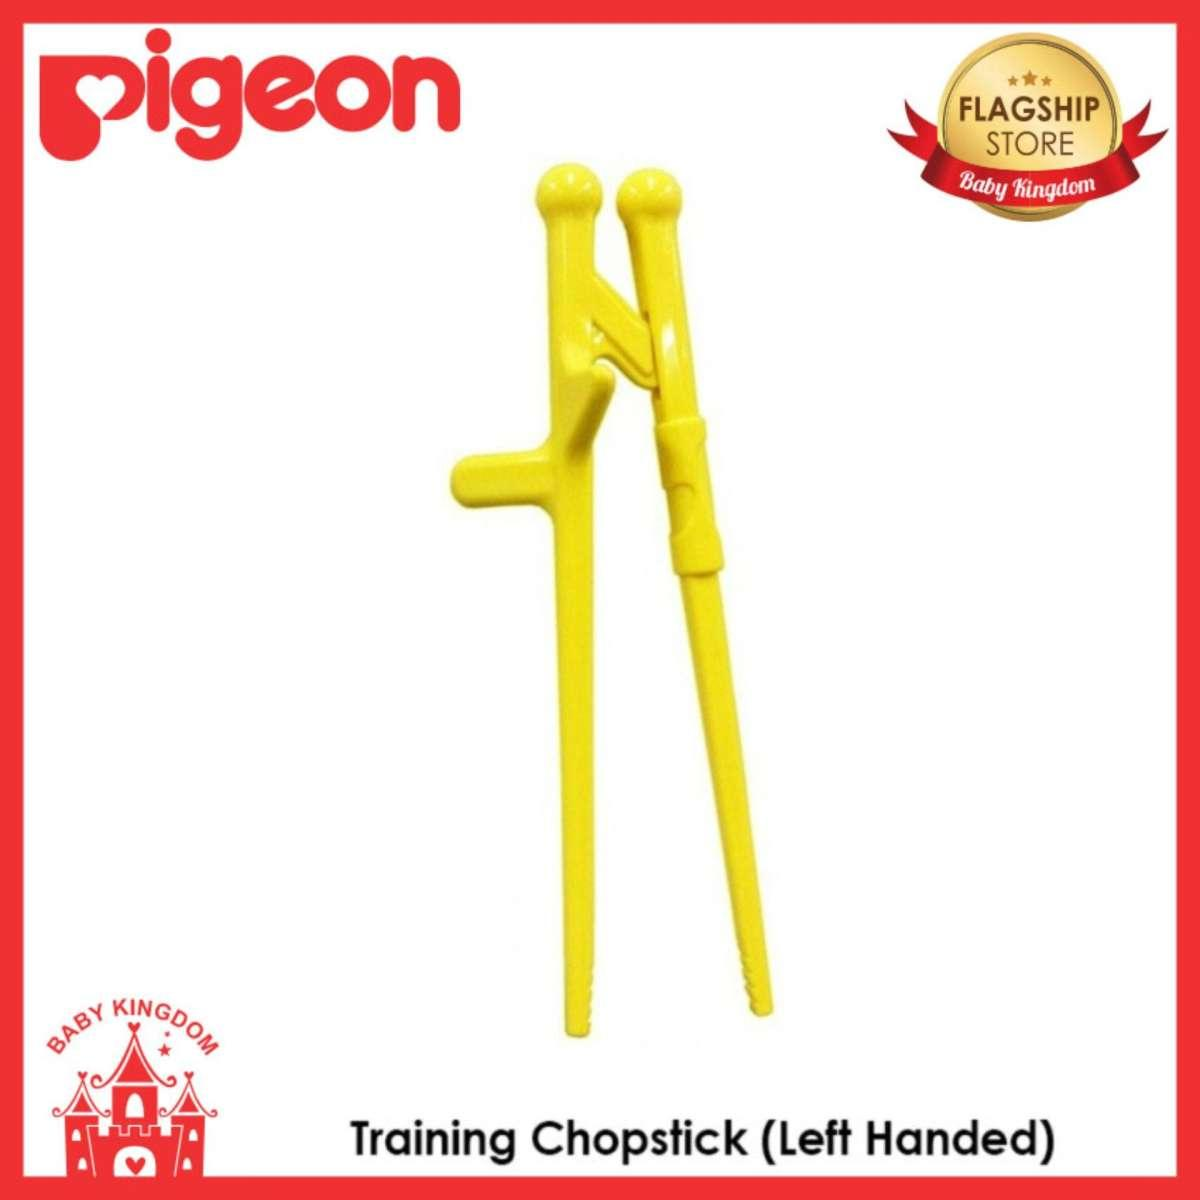 Pigeon Training Chopstick (left Handed) By Baby Kingdom.